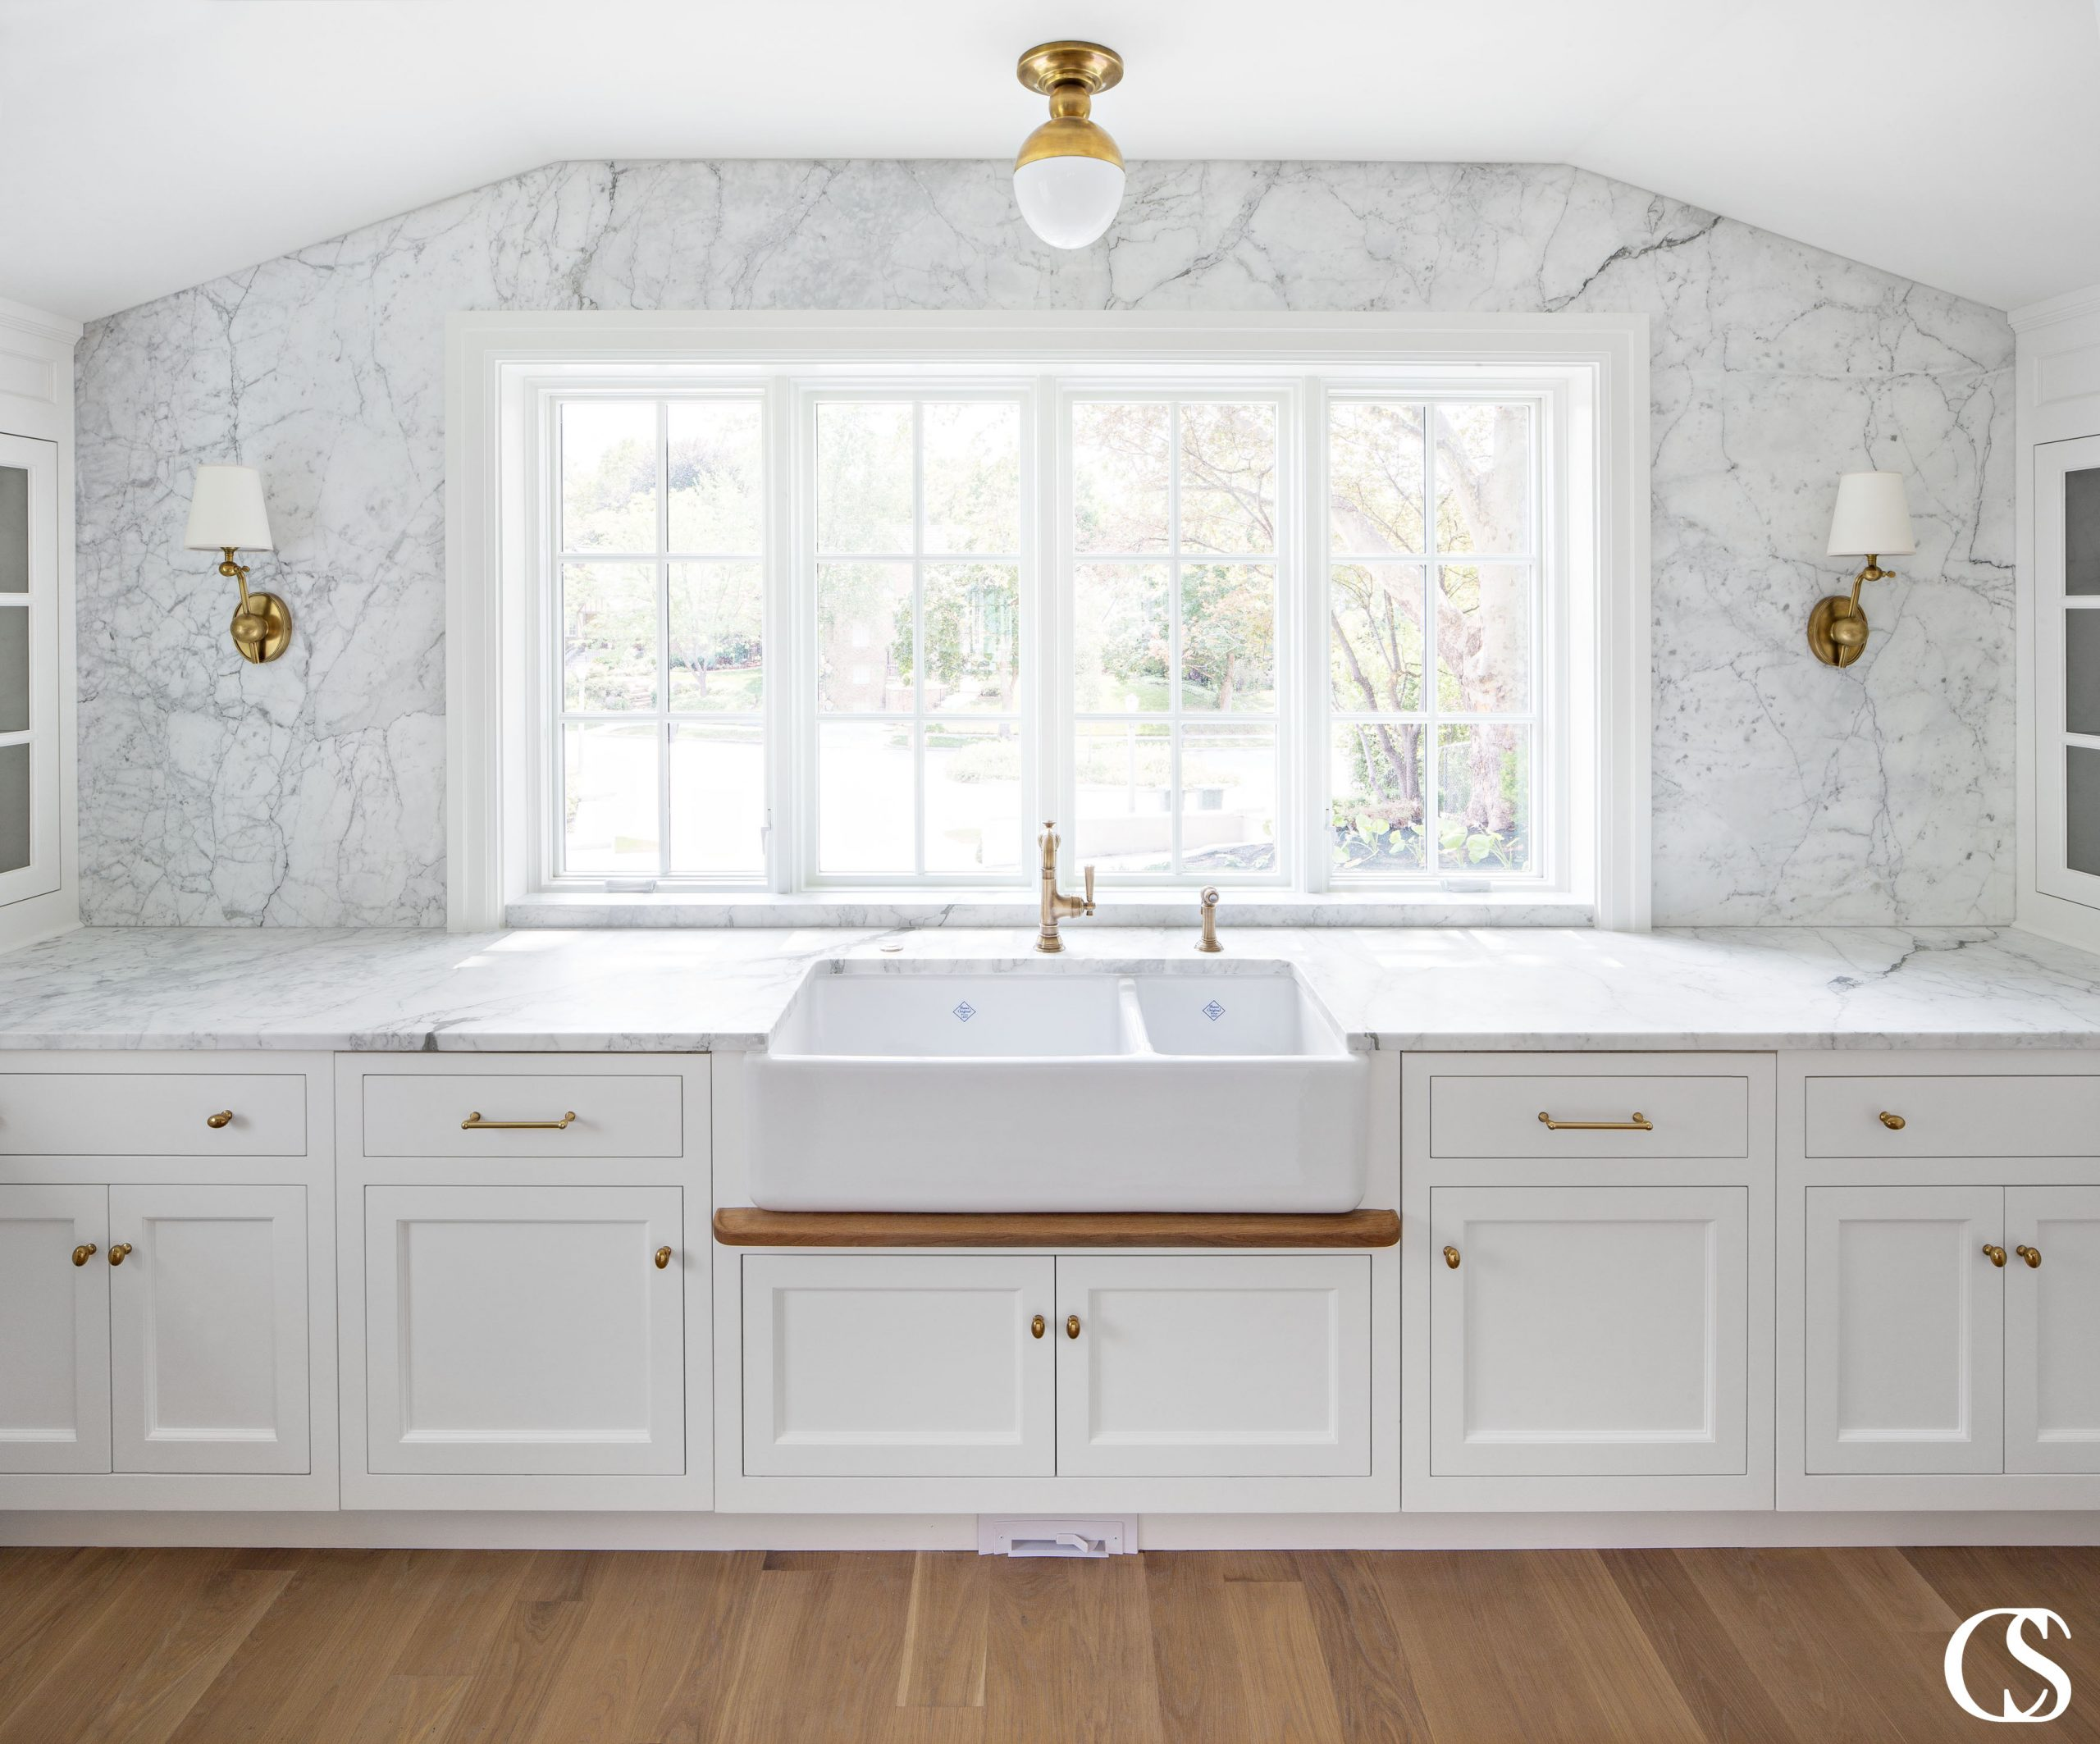 These custom white kitchen cabinets use beautiful inset drawers and doors. Inset cabinets create a traditional but timeless and high end look.